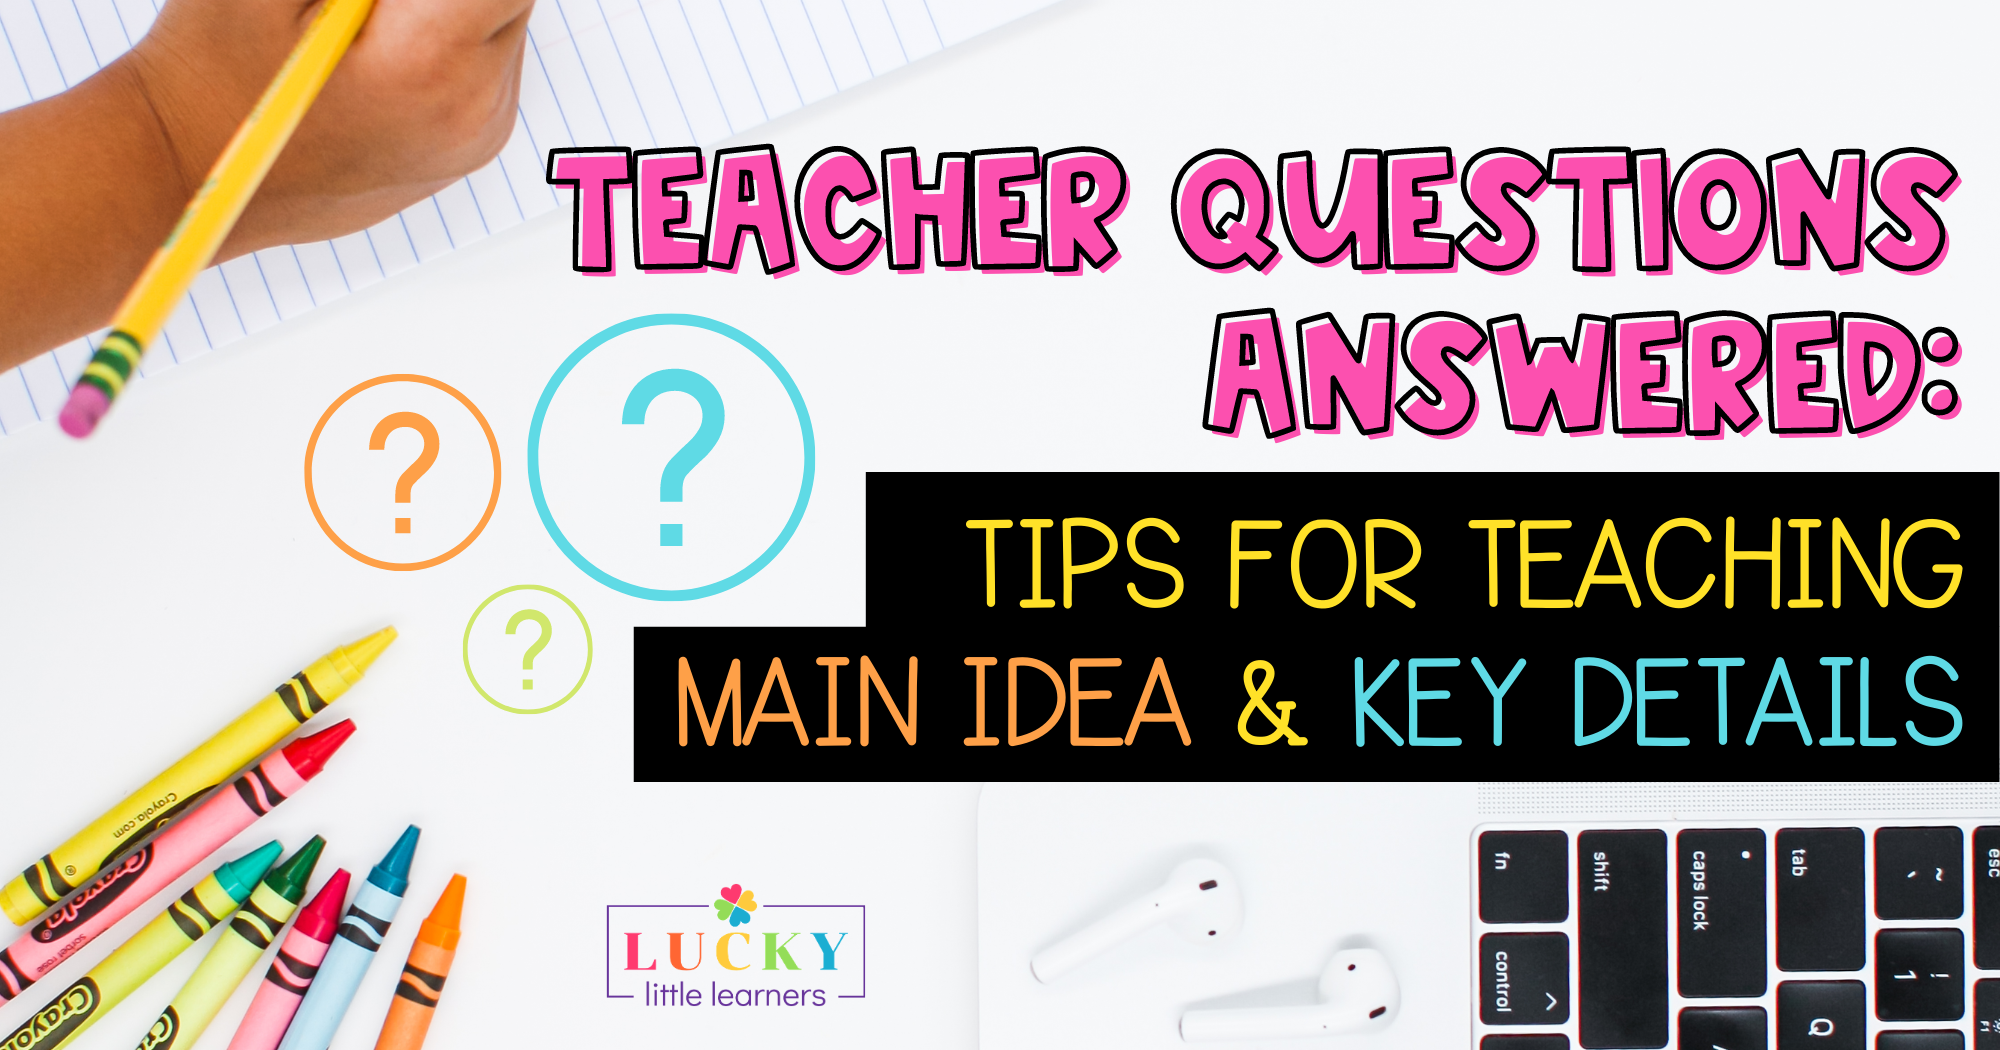 Teacher Questions Answered: Tips For Teaching Main Idea and Key Details